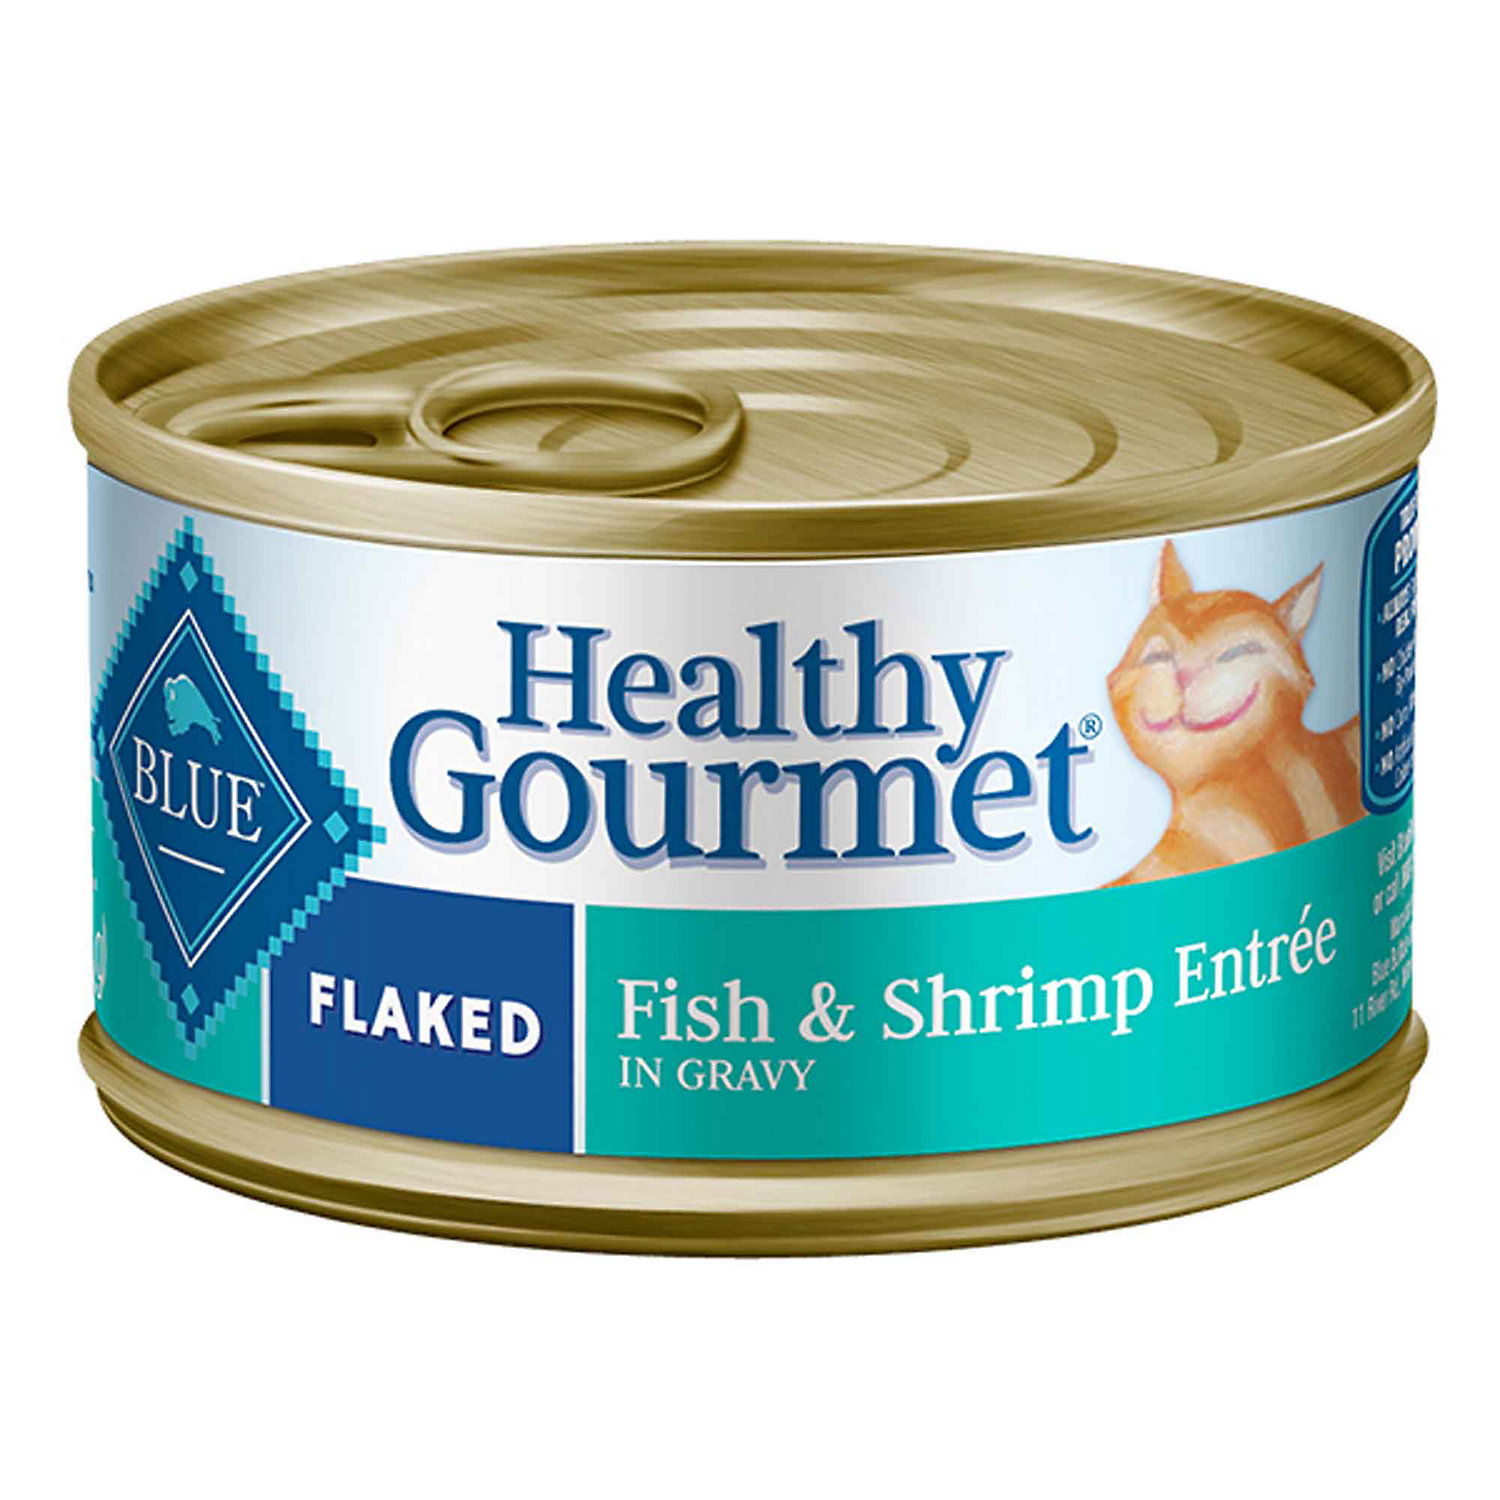 Blue Buffalo Healthy Gourmet Flaked Fish Shrimp Adult Canned Cat Food 3 Oz. Case Of 24